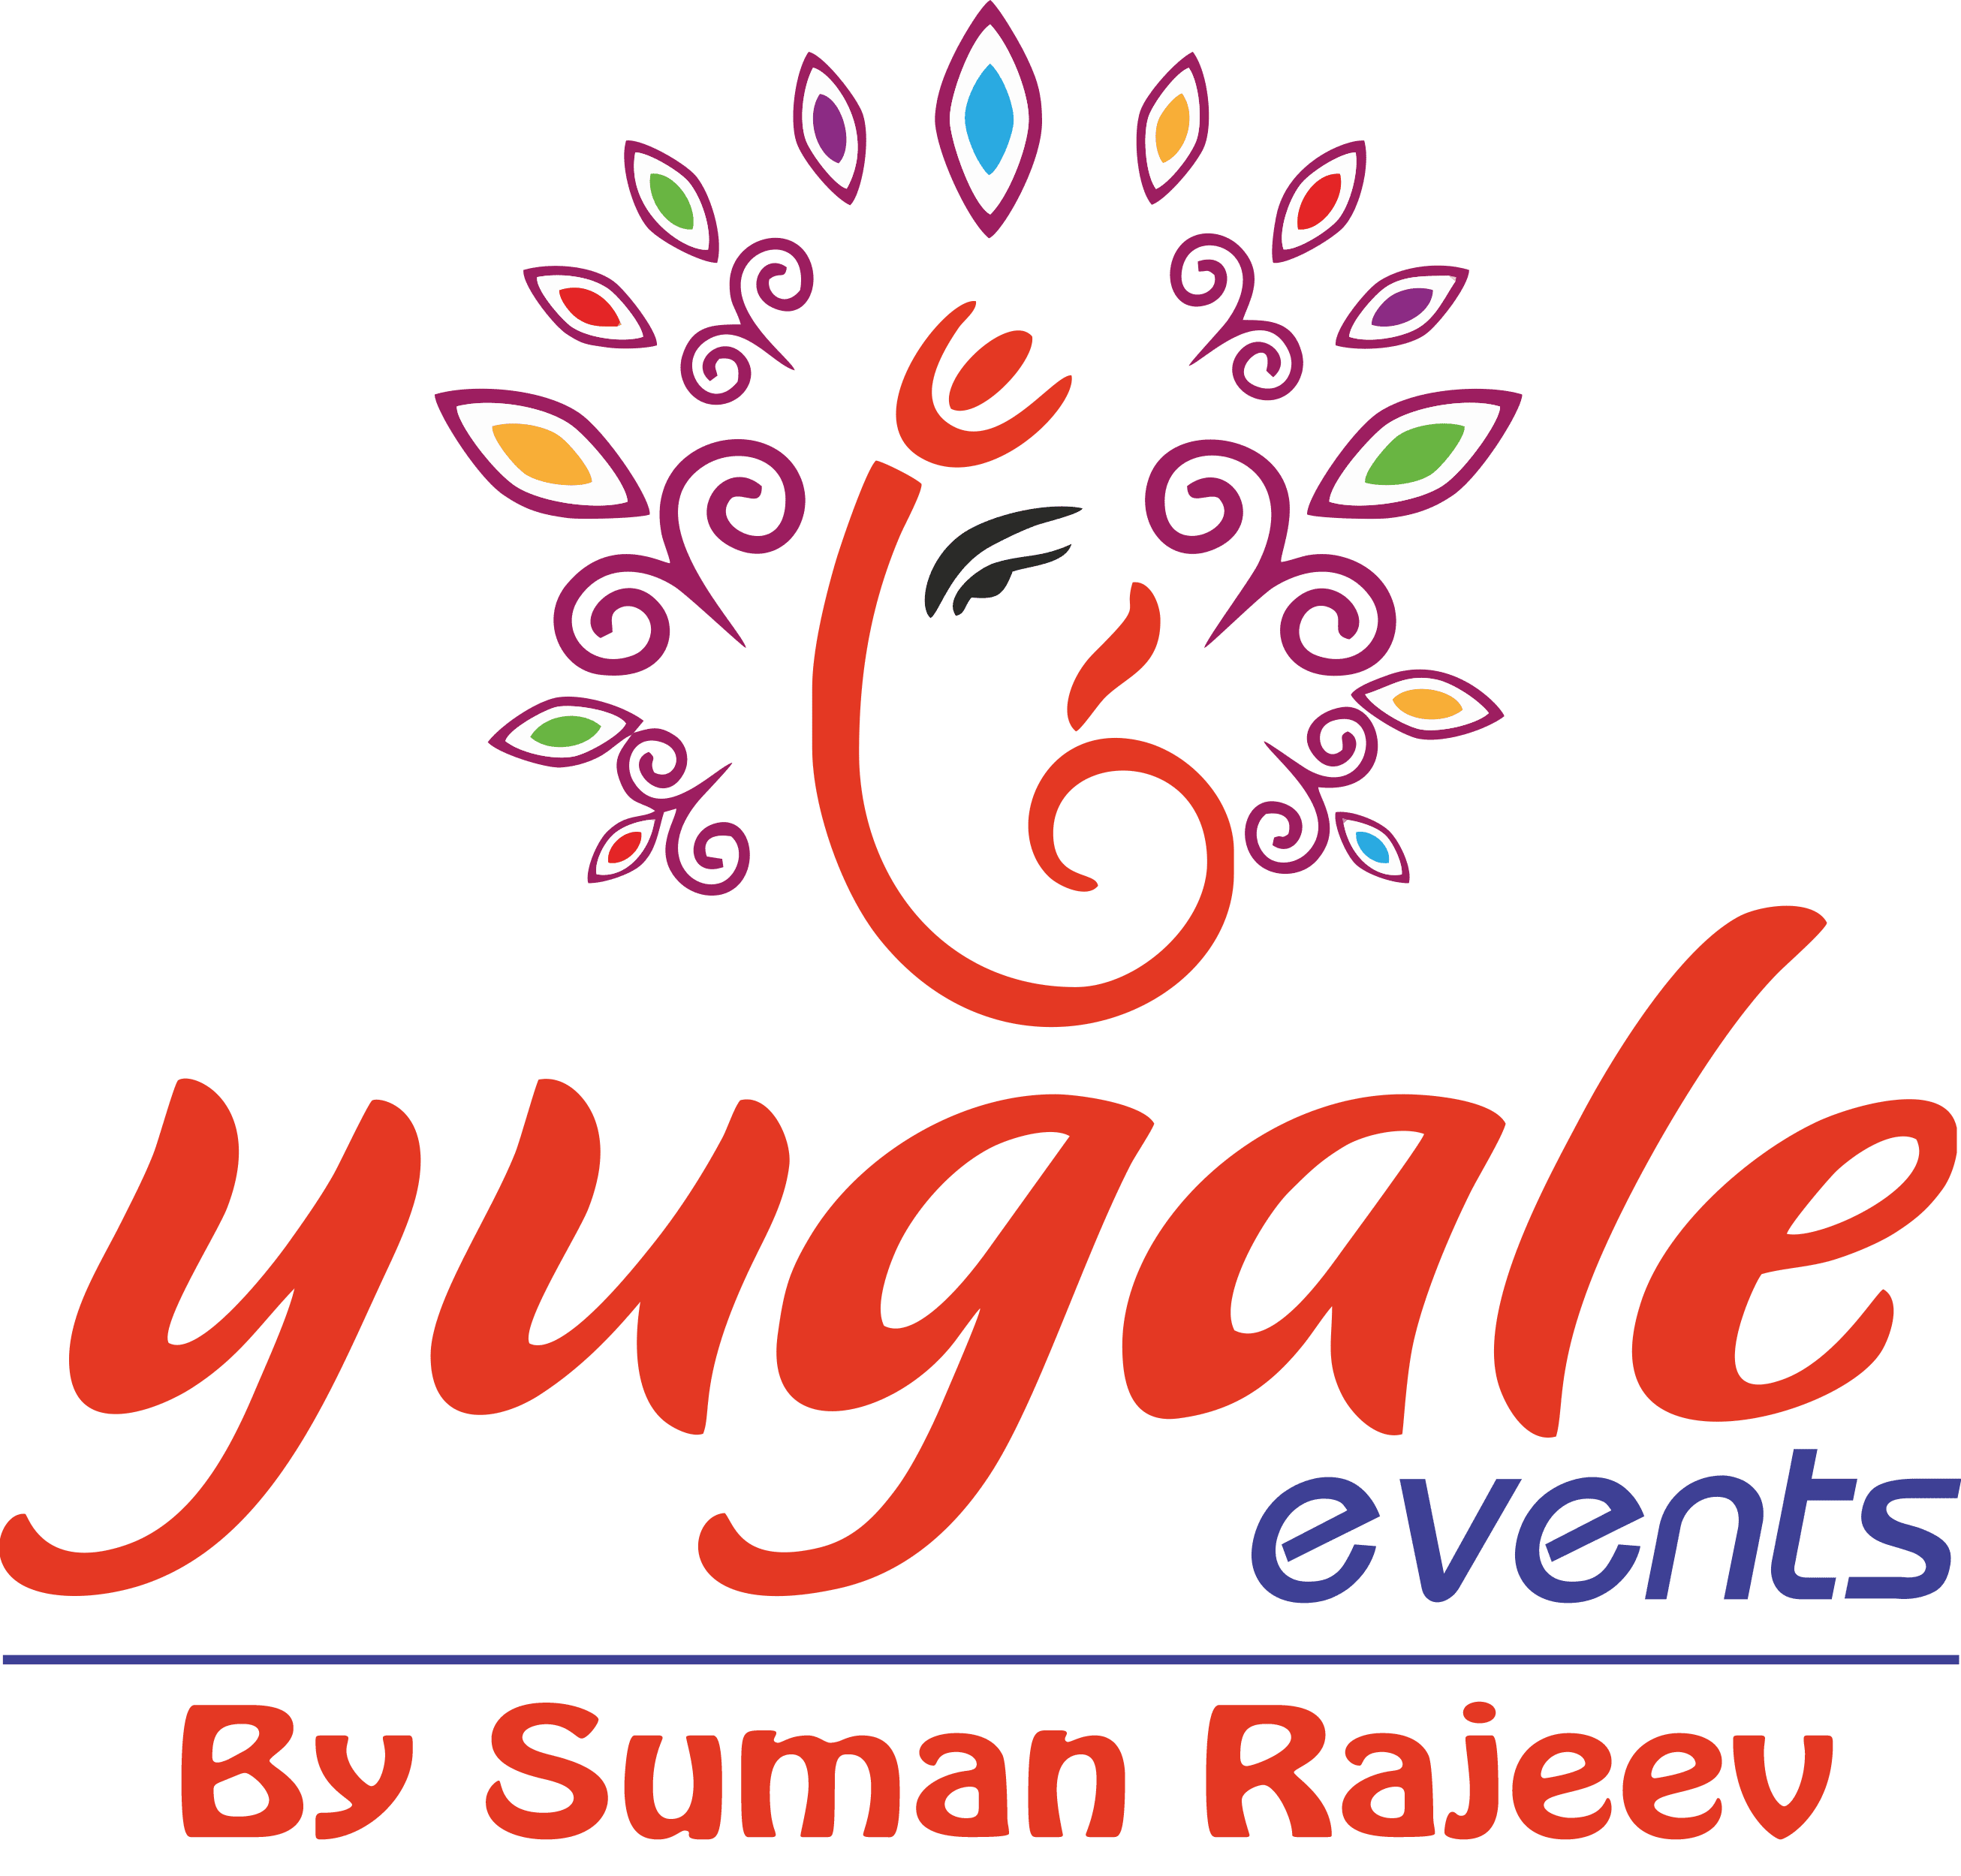 Yugale Events By Suman Rajeev